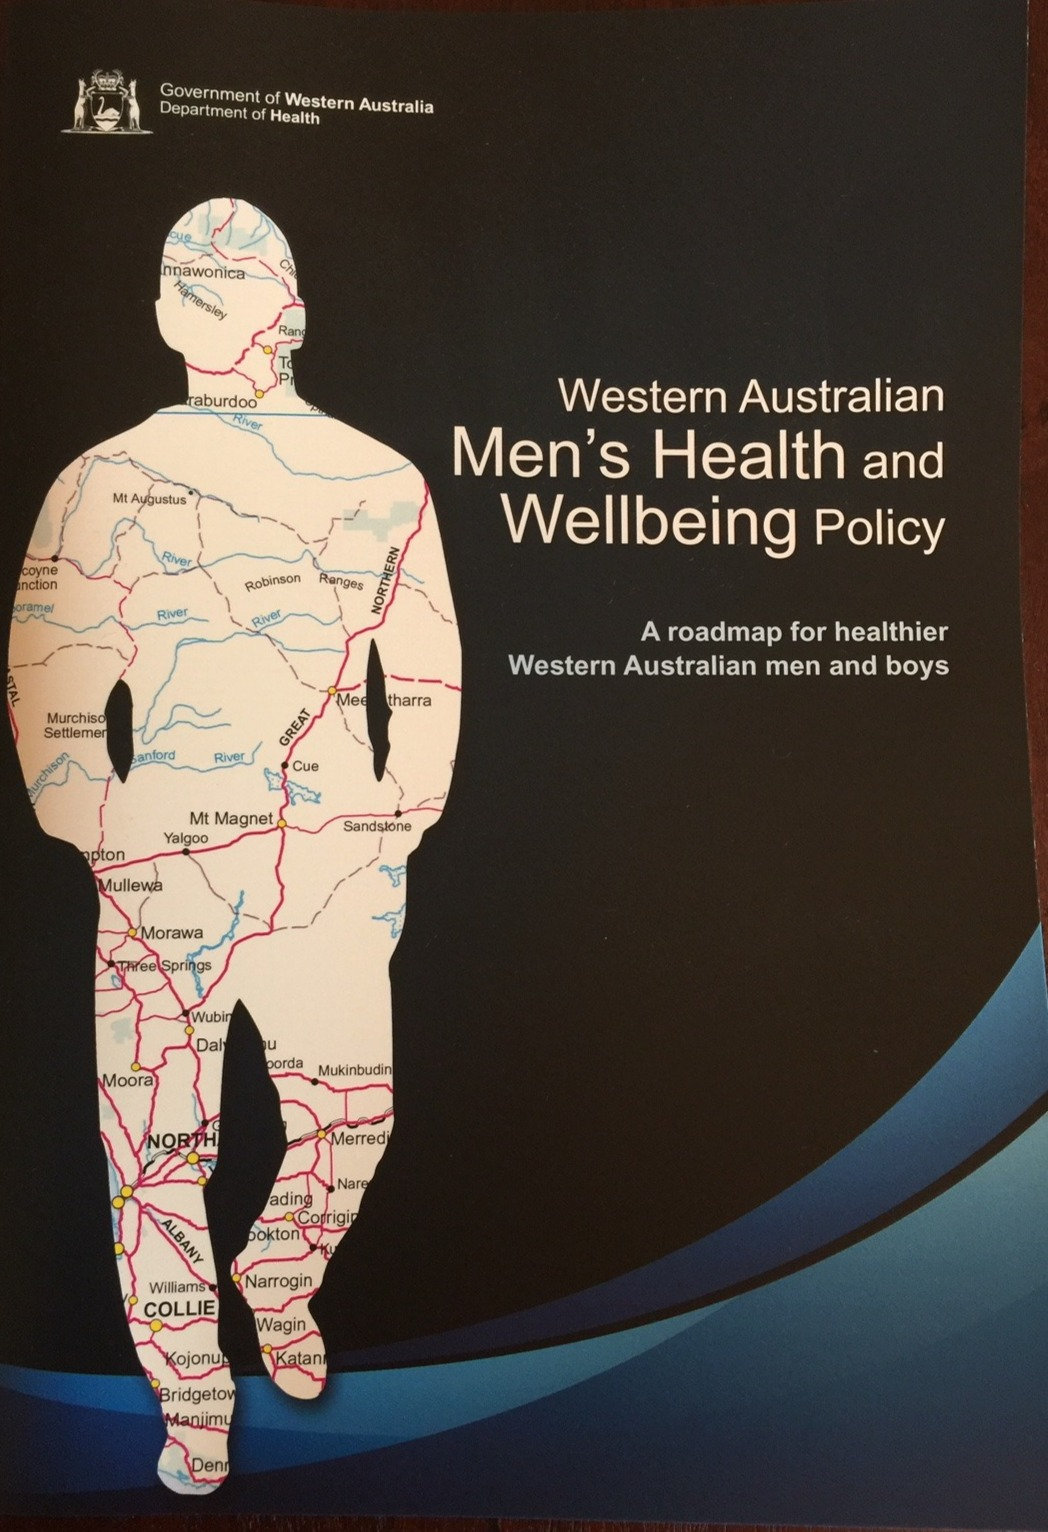 WA Men's Health and Wellbeing Policy